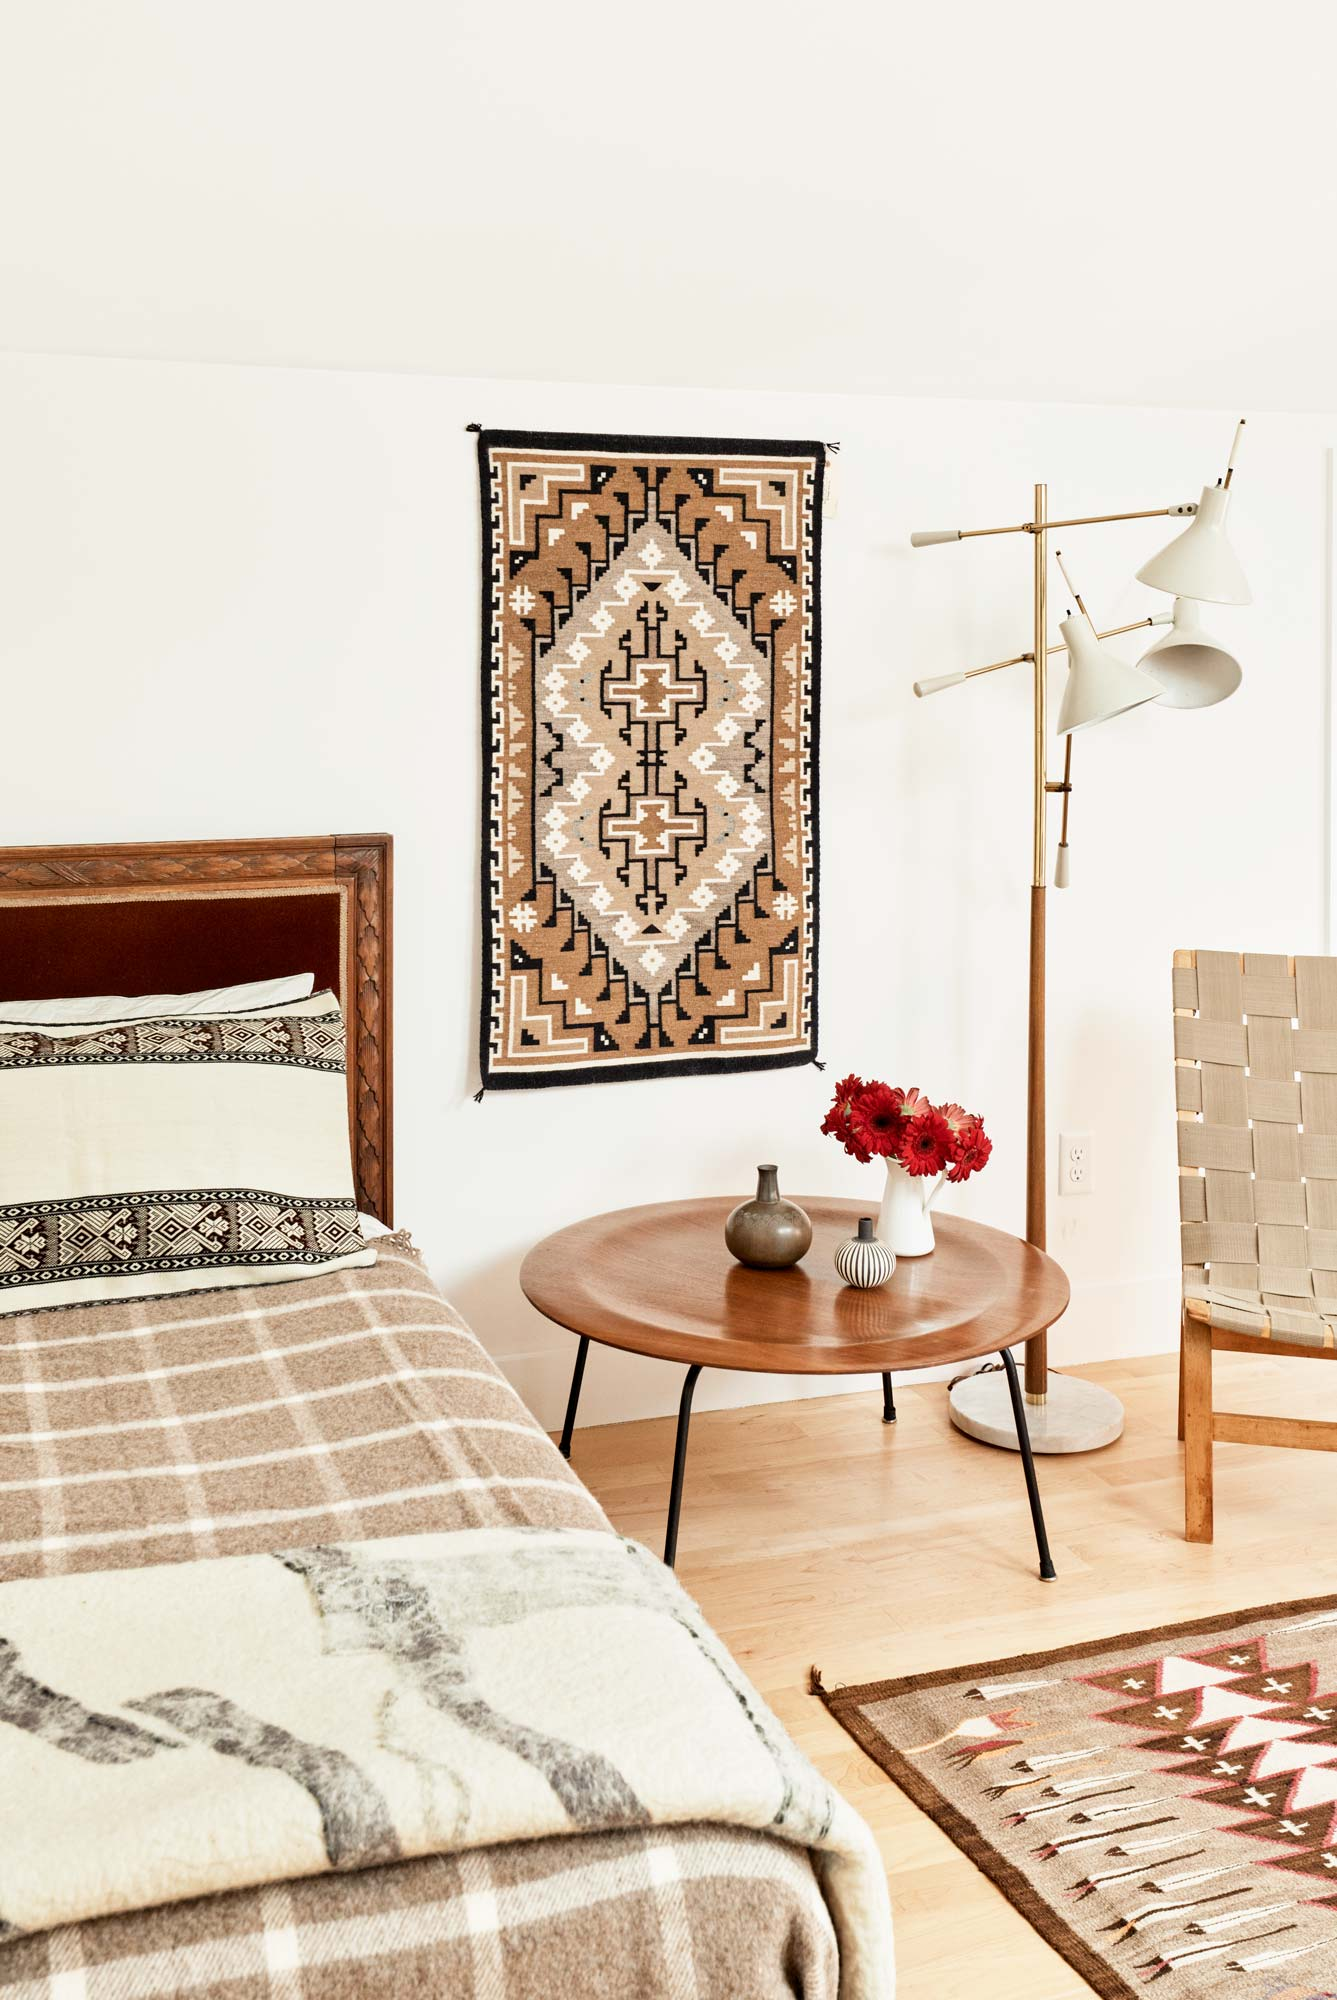 A traditional, 19th-century bed sits alongside mid-century modern furnishings in Werber's office. Navajo textiles throughout the room tie the eclectic mix together.